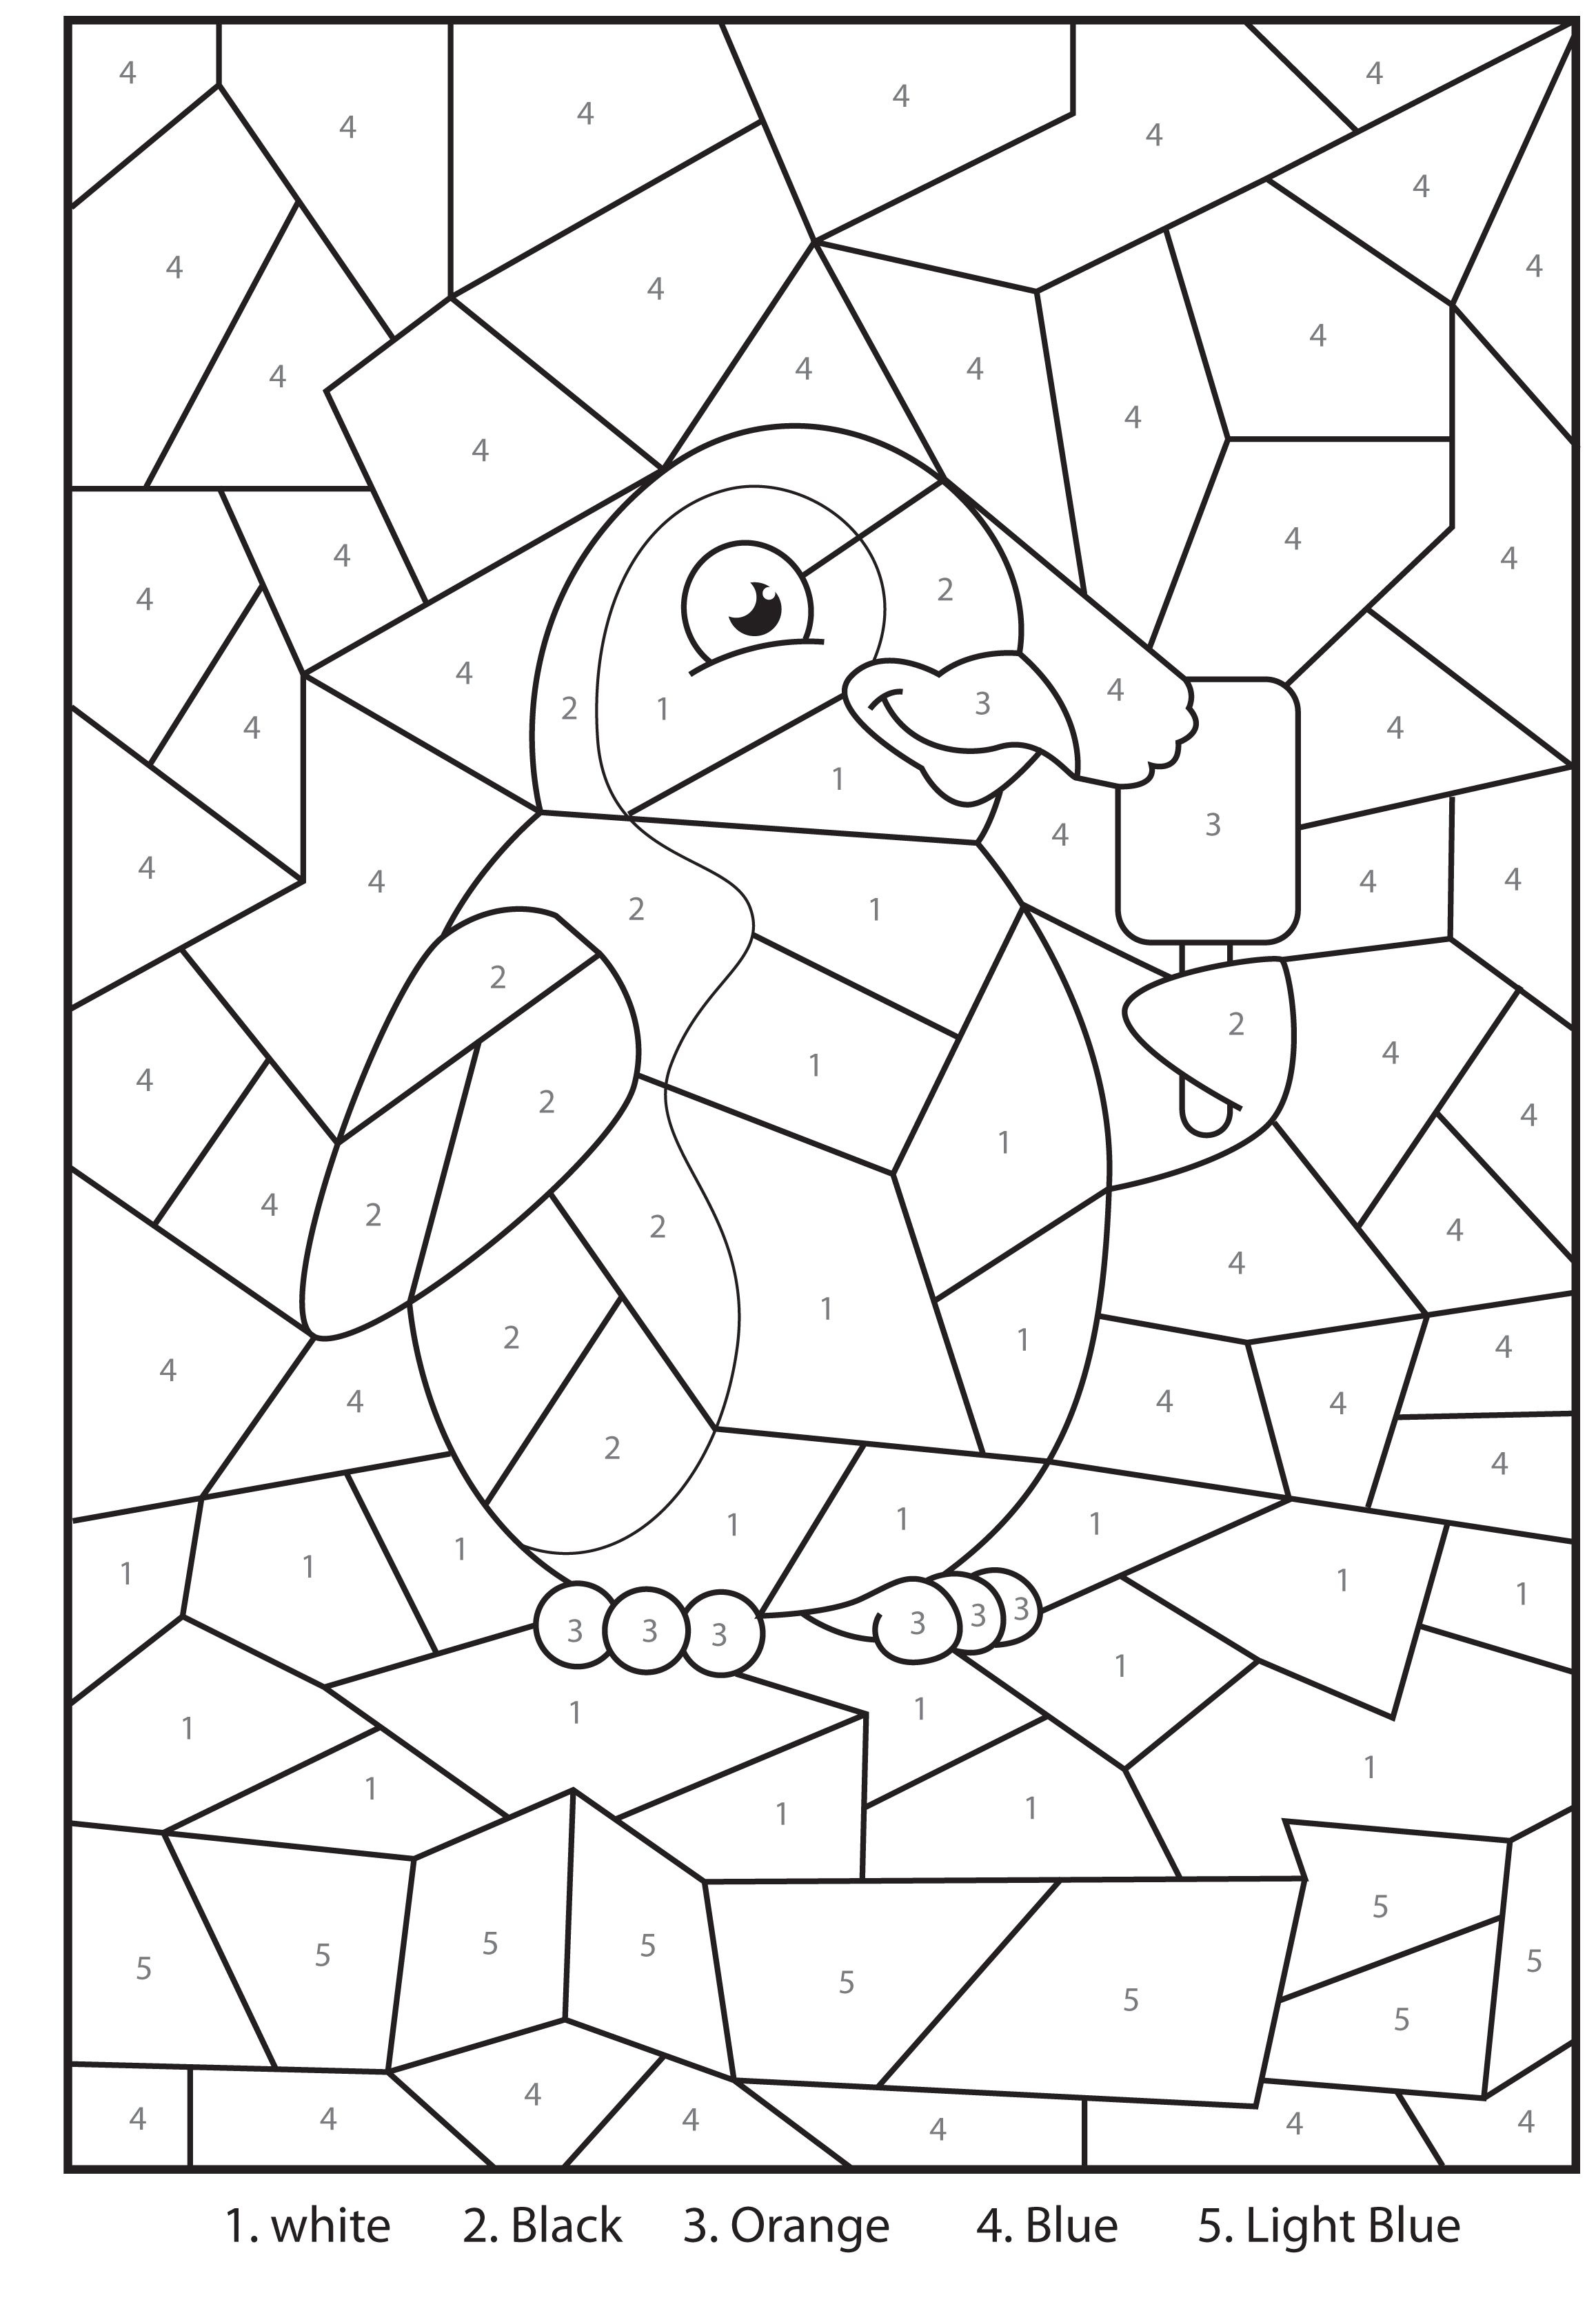 Free Printable Penguin At The Zoo Colournumbers Activity For - Free Printable Activities For Kids